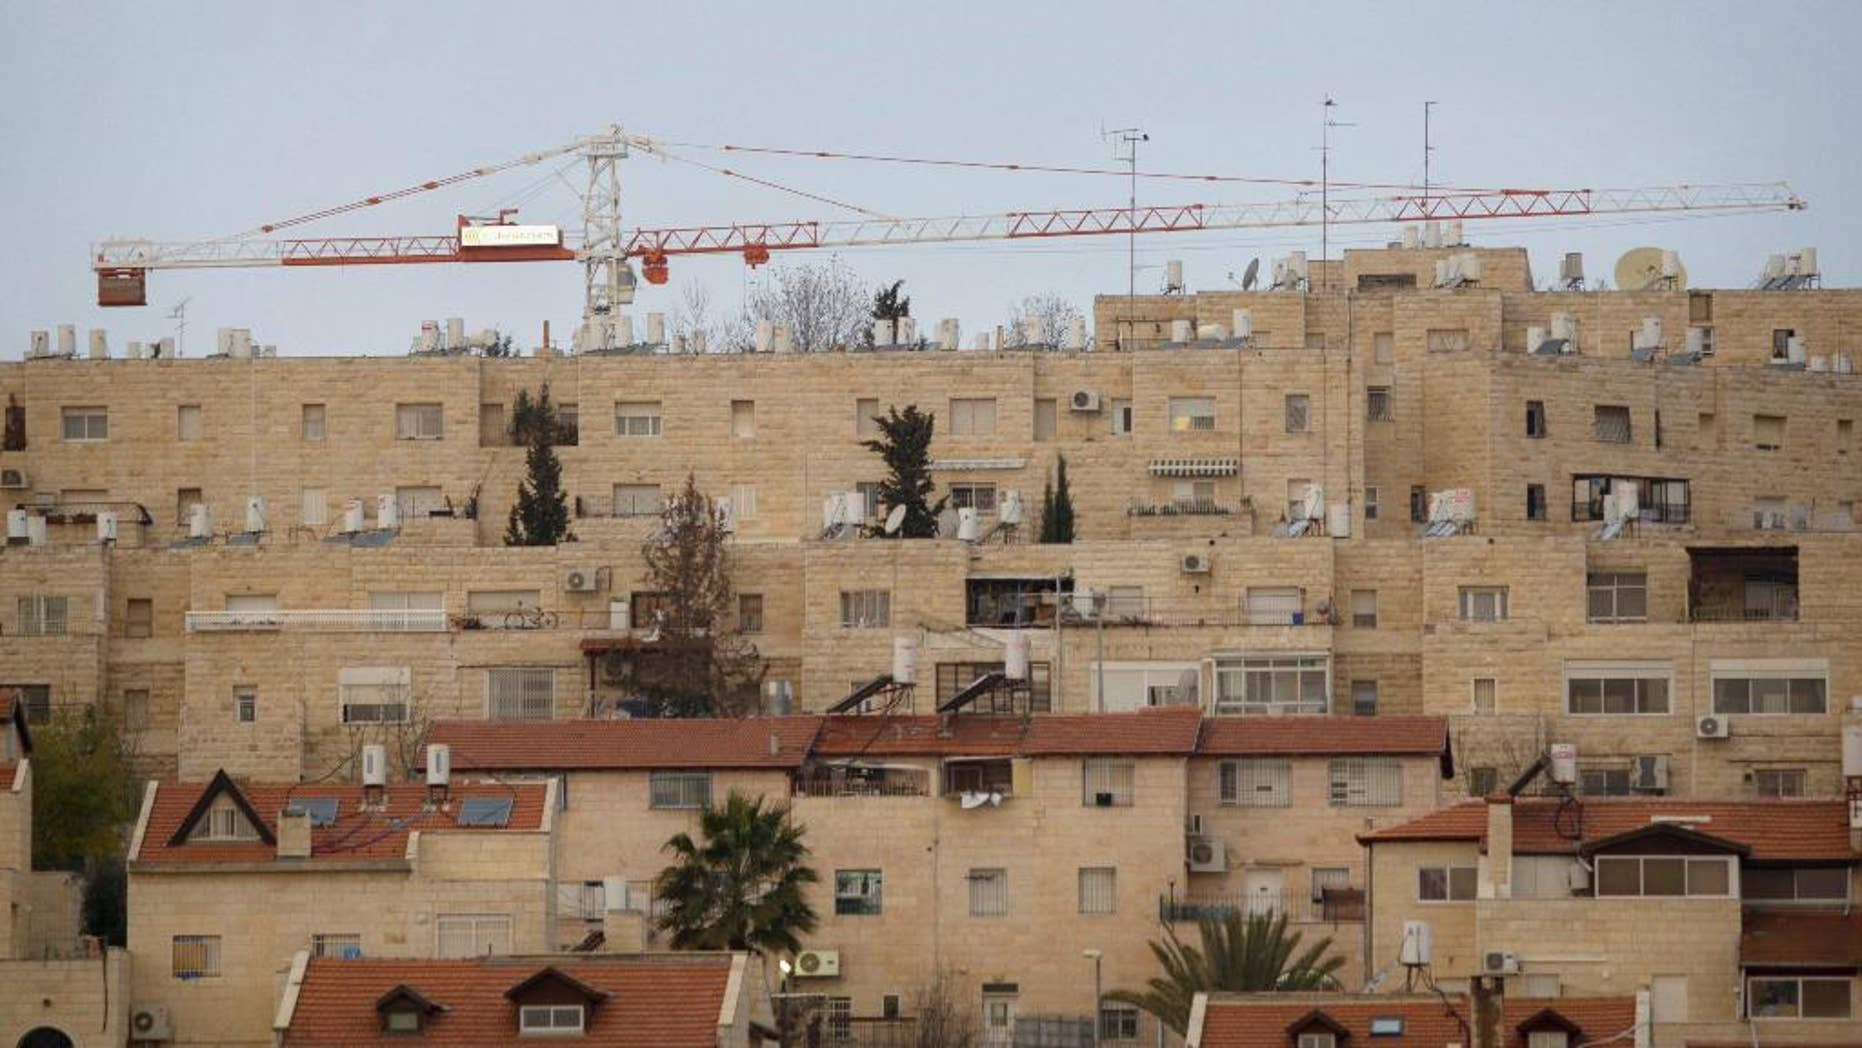 FILE - In this Jan. 16, 2011 file photo construction cranes are seen at the Jewish neighborhood of Gilo in Jerusalem. A Jerusalem city official says authorities have pushed forward plans to build 181 new homes in east Jerusalem Gilo area. srael captured east Jerusalem and the West Bank in 1967. Israel subsequently annexed east Jerusalem and considers areas like Gilo to be neighborhoods of its capital. The Palestinians claim east Jerusalem as their future capital, and most of the world considers settlement construction there and in the West Bank illegal or illegitimate. (AP Photo/Sebastian Scheiner, file)